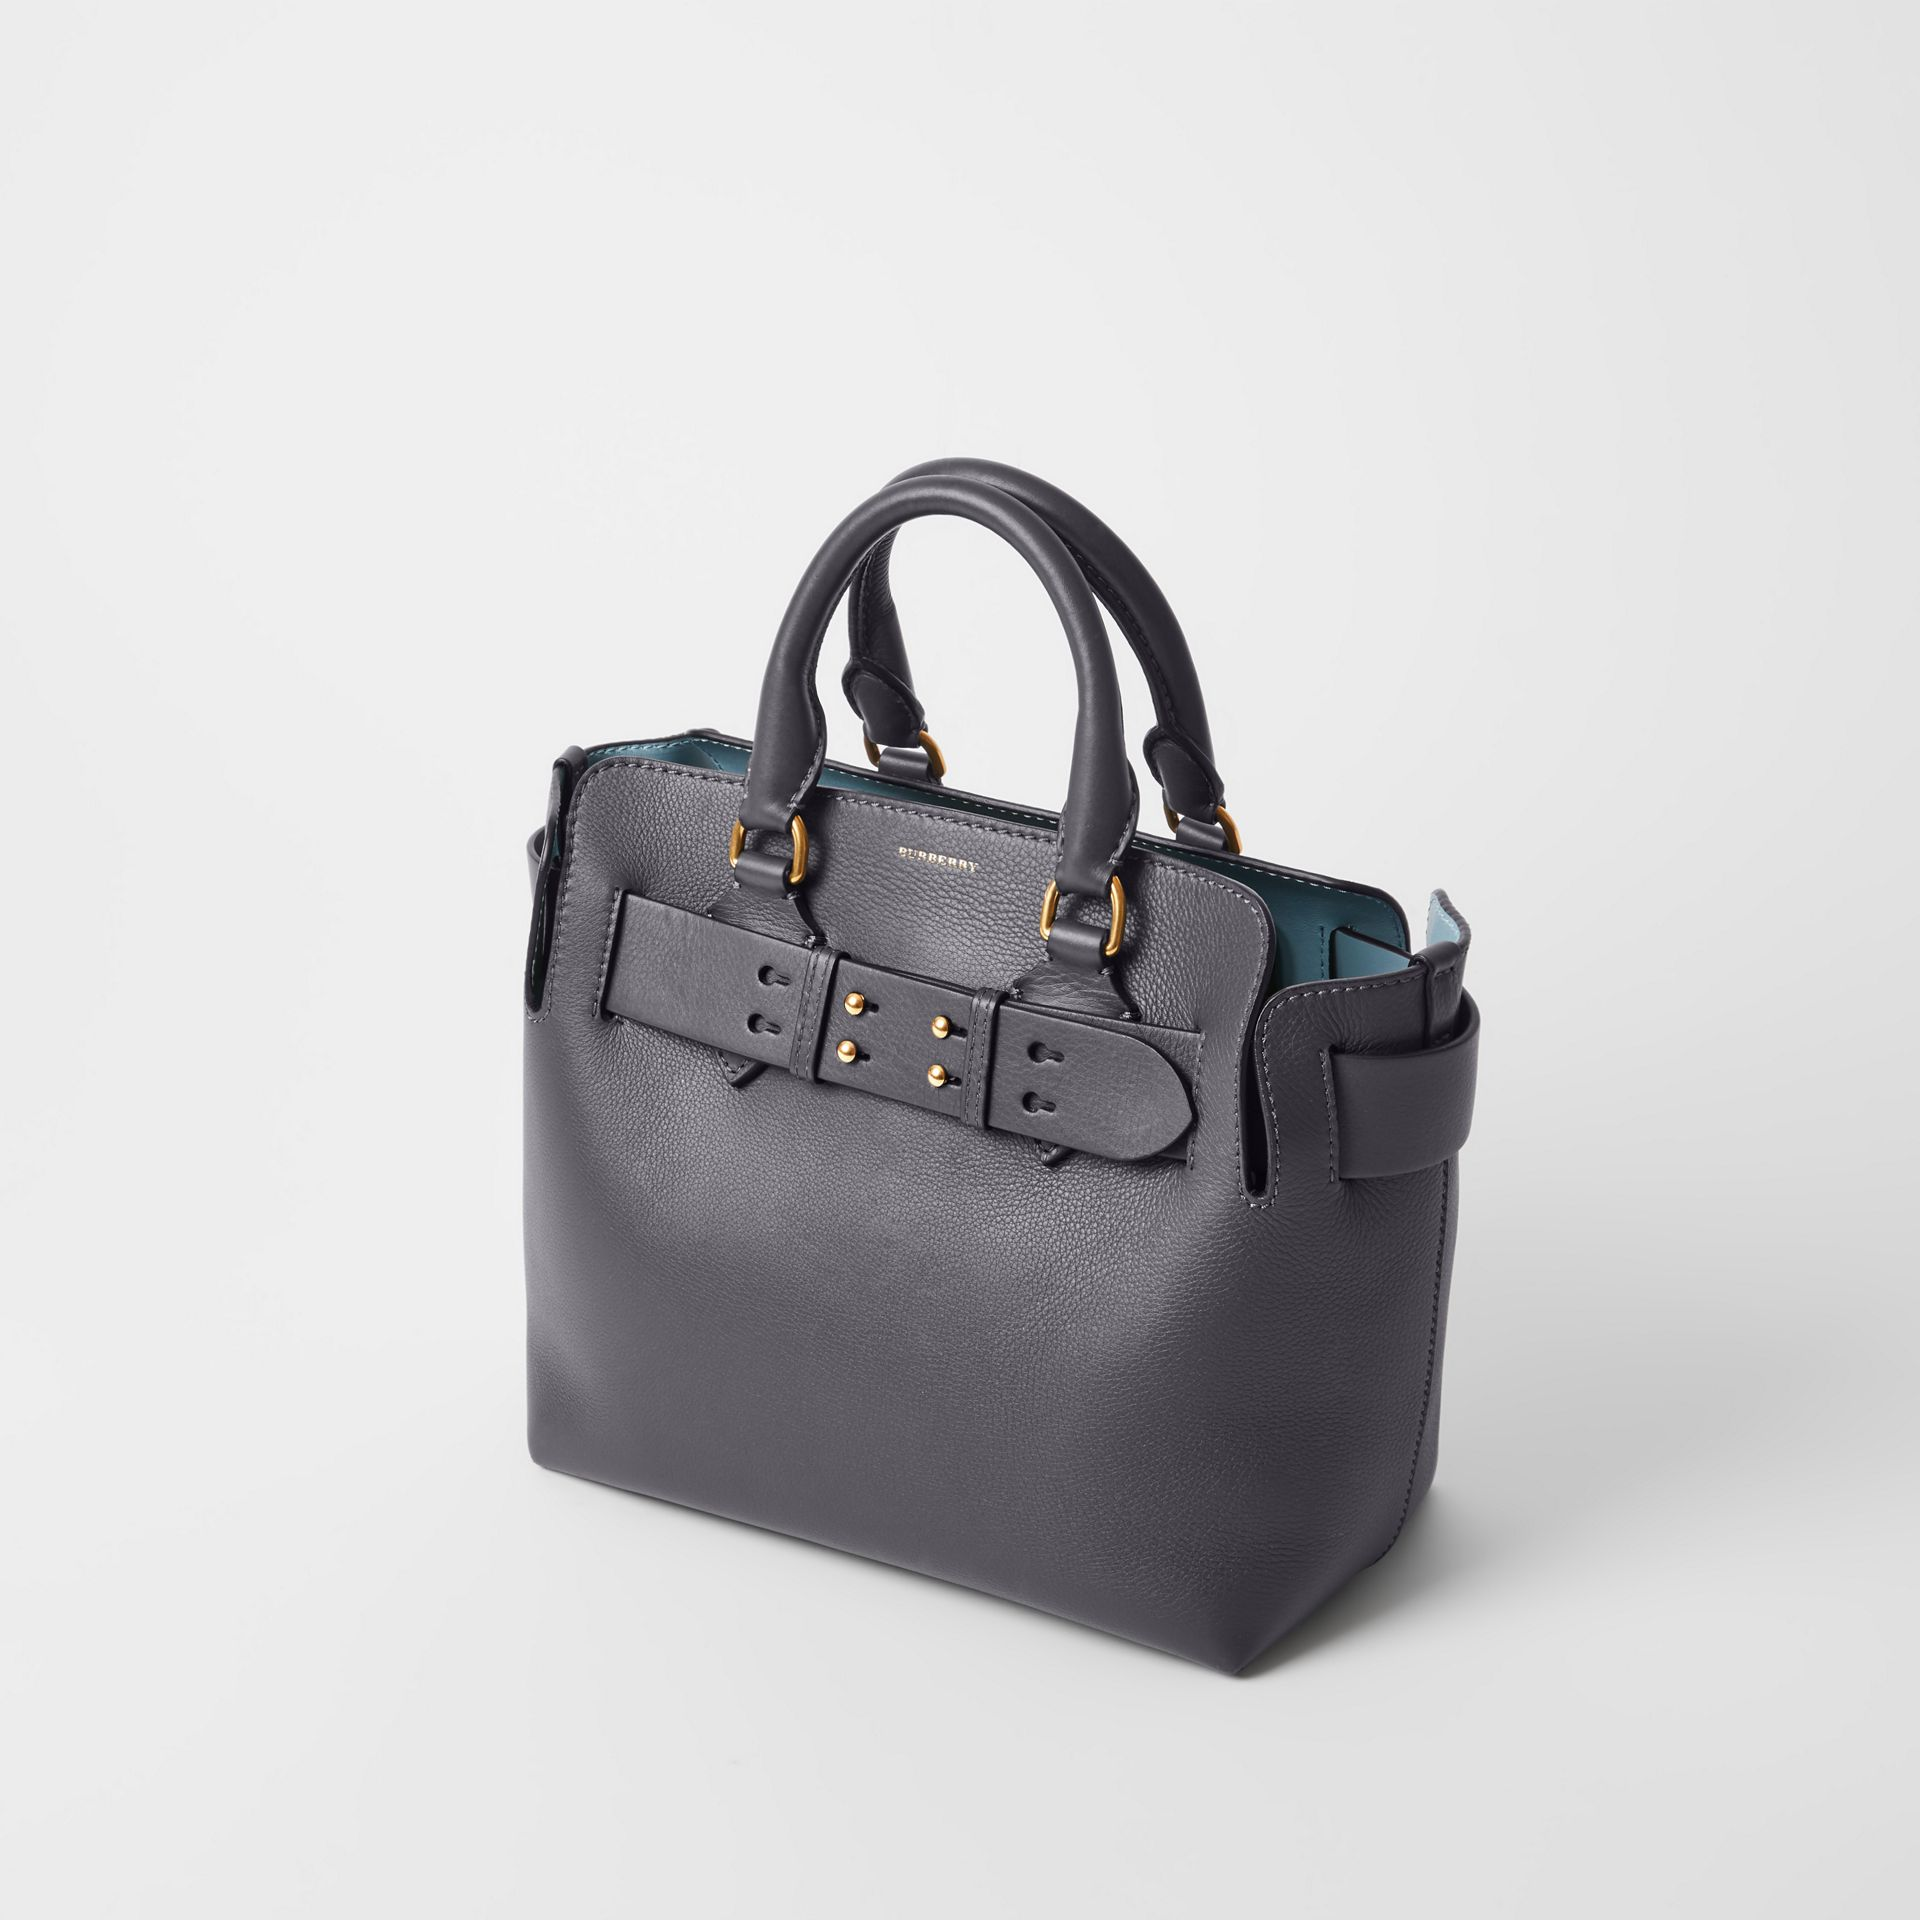 Petit sac The Belt en cuir (Gris Anthracite) - Femme | Burberry Canada - photo de la galerie 3